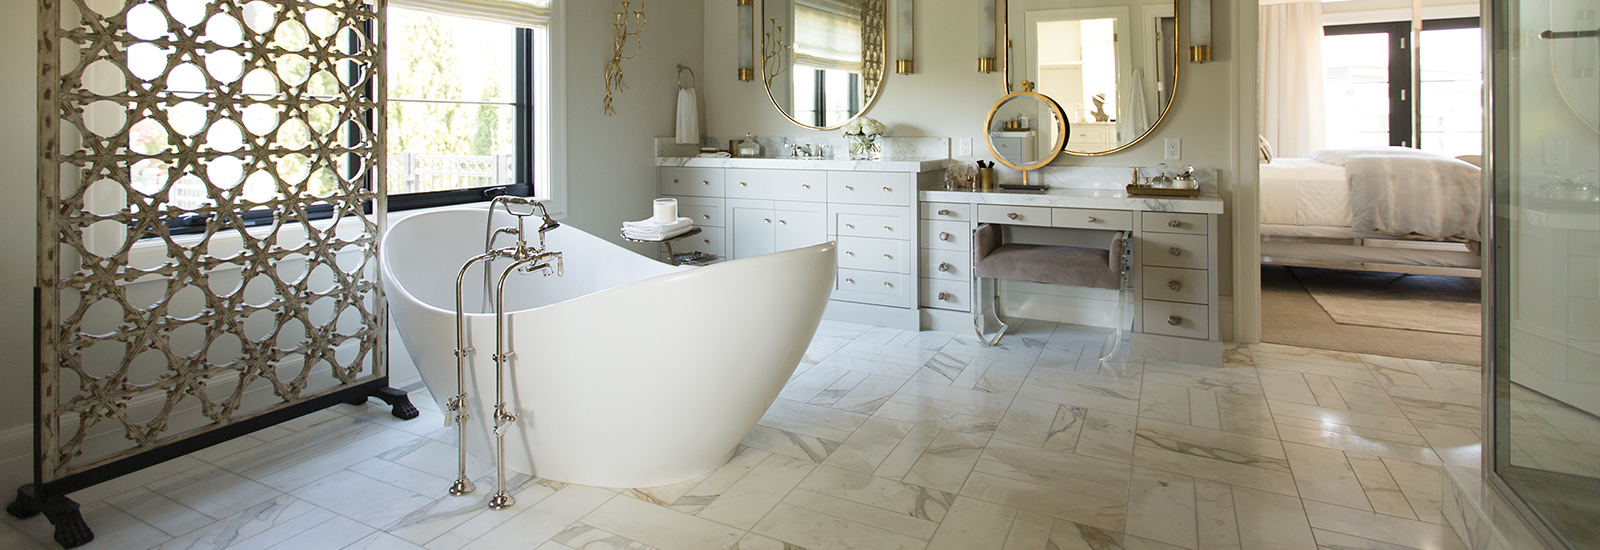 Bathroom Remodeling Ideas - San Jose, CA